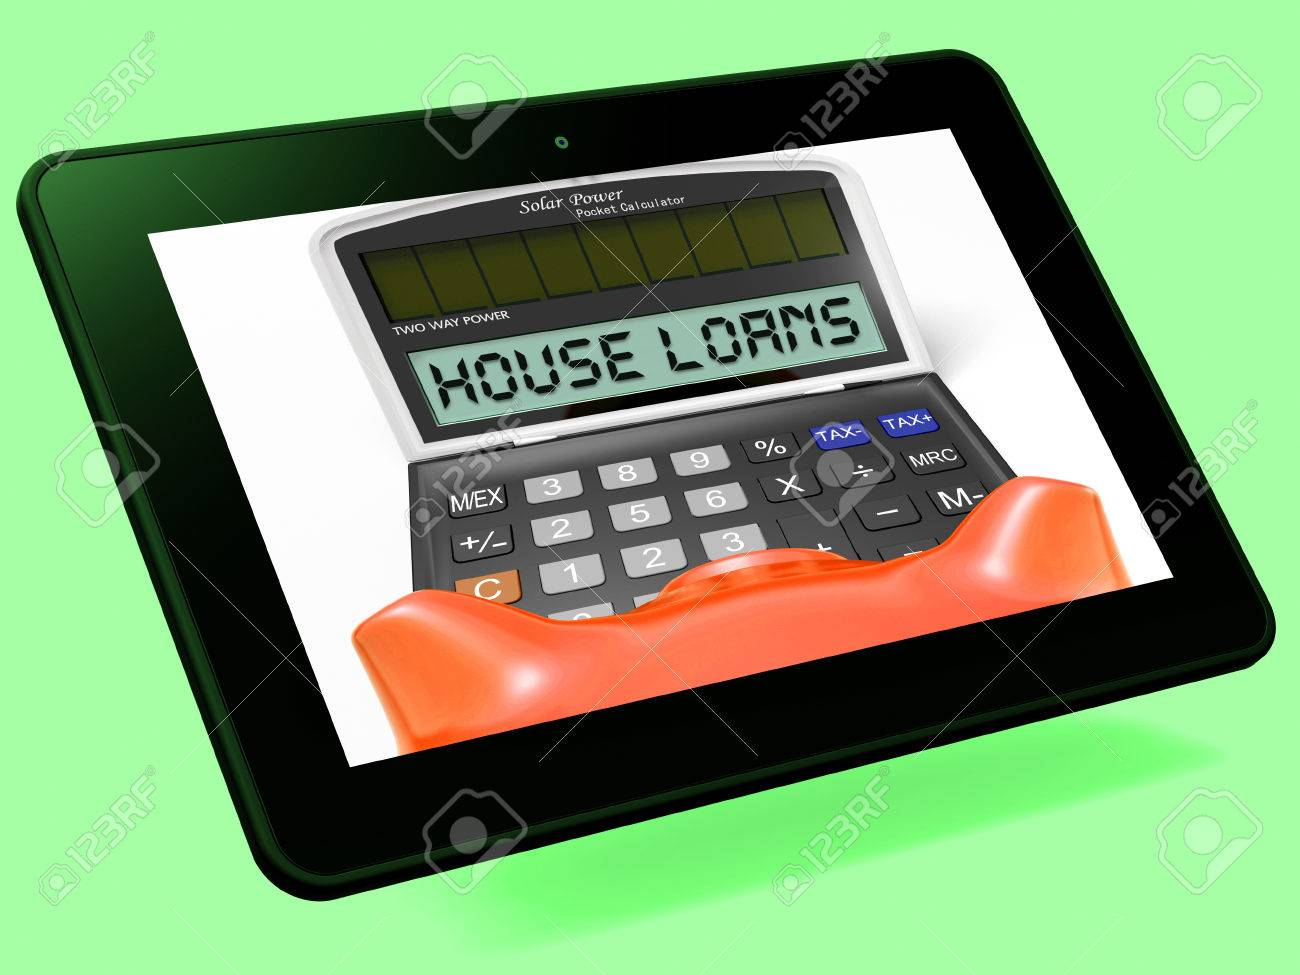 house loans calculator tablet showing mortgage and bank lending stock photo 29055135